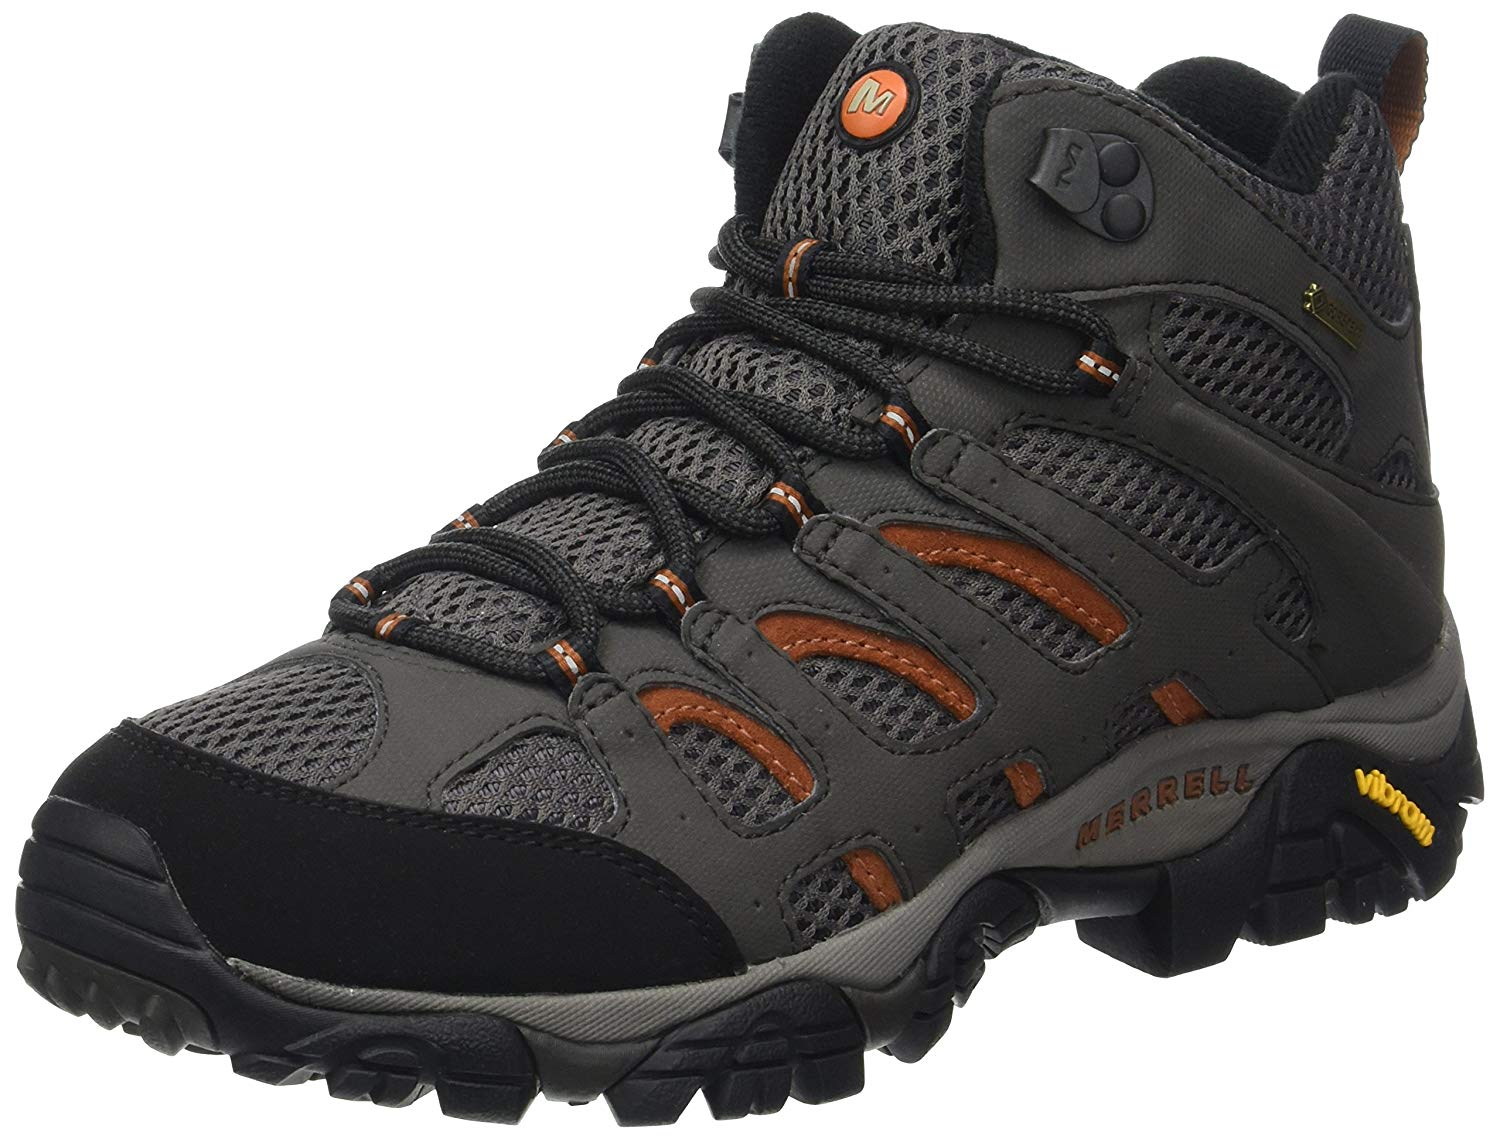 11cb97db5ac65 Cheap Merrell Ladies Shoes, find Merrell Ladies Shoes deals on line ...